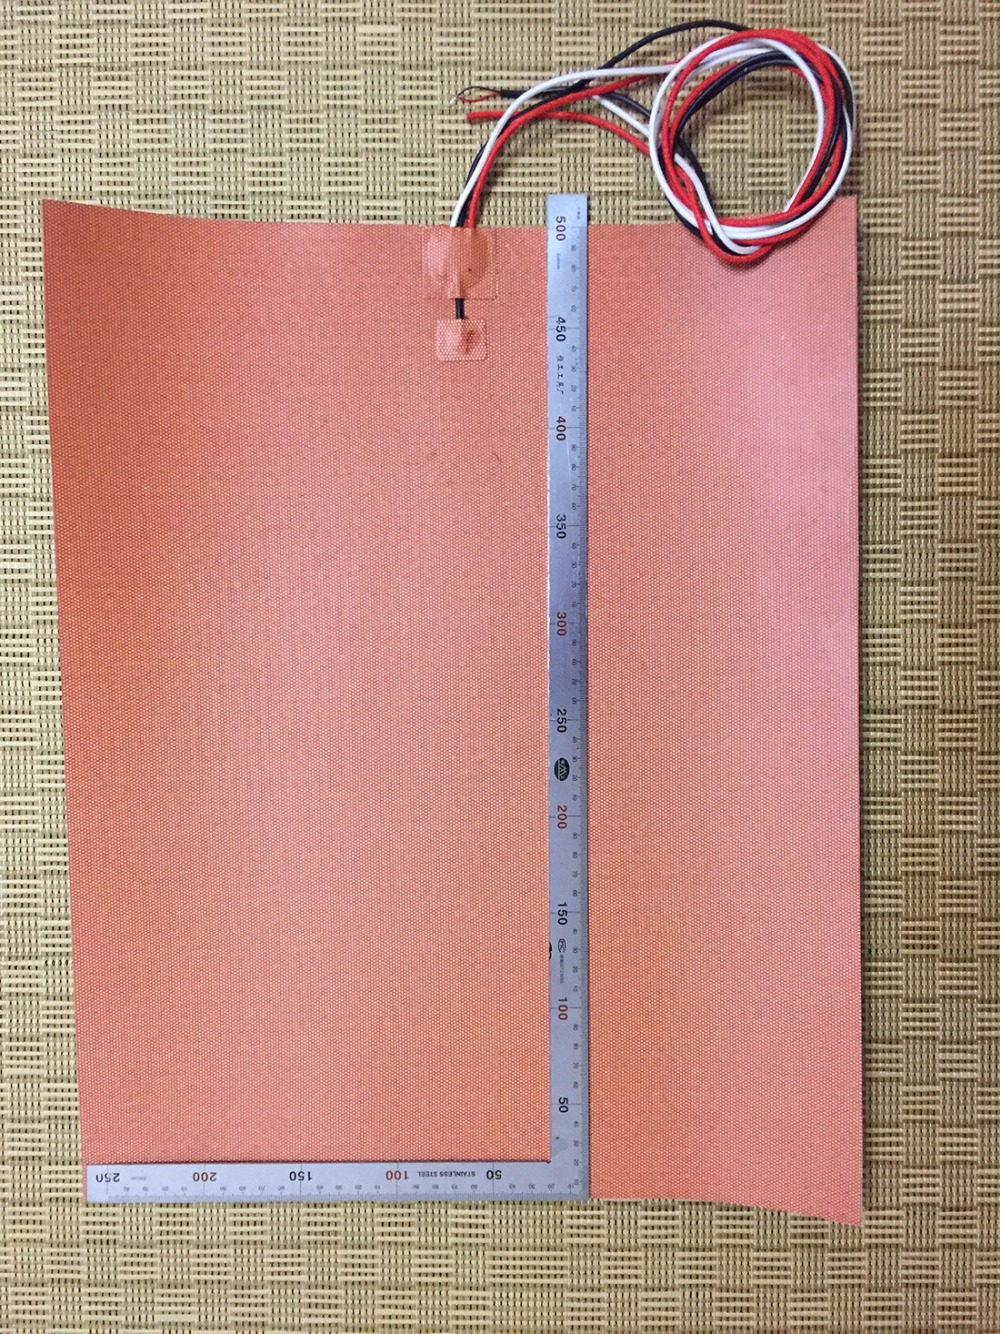 400mmX500mm 1600W 120V, w/ NTC 100K Thermistor,Silicone Heater Huge Mega 3D Printer Heater,Heatbed Large Plate Heating Pad 400mmx500mm 1600w 110v w ntc 100k thermistor silicone heater huge mega 3d printer heater heatbed large plate heating pad film